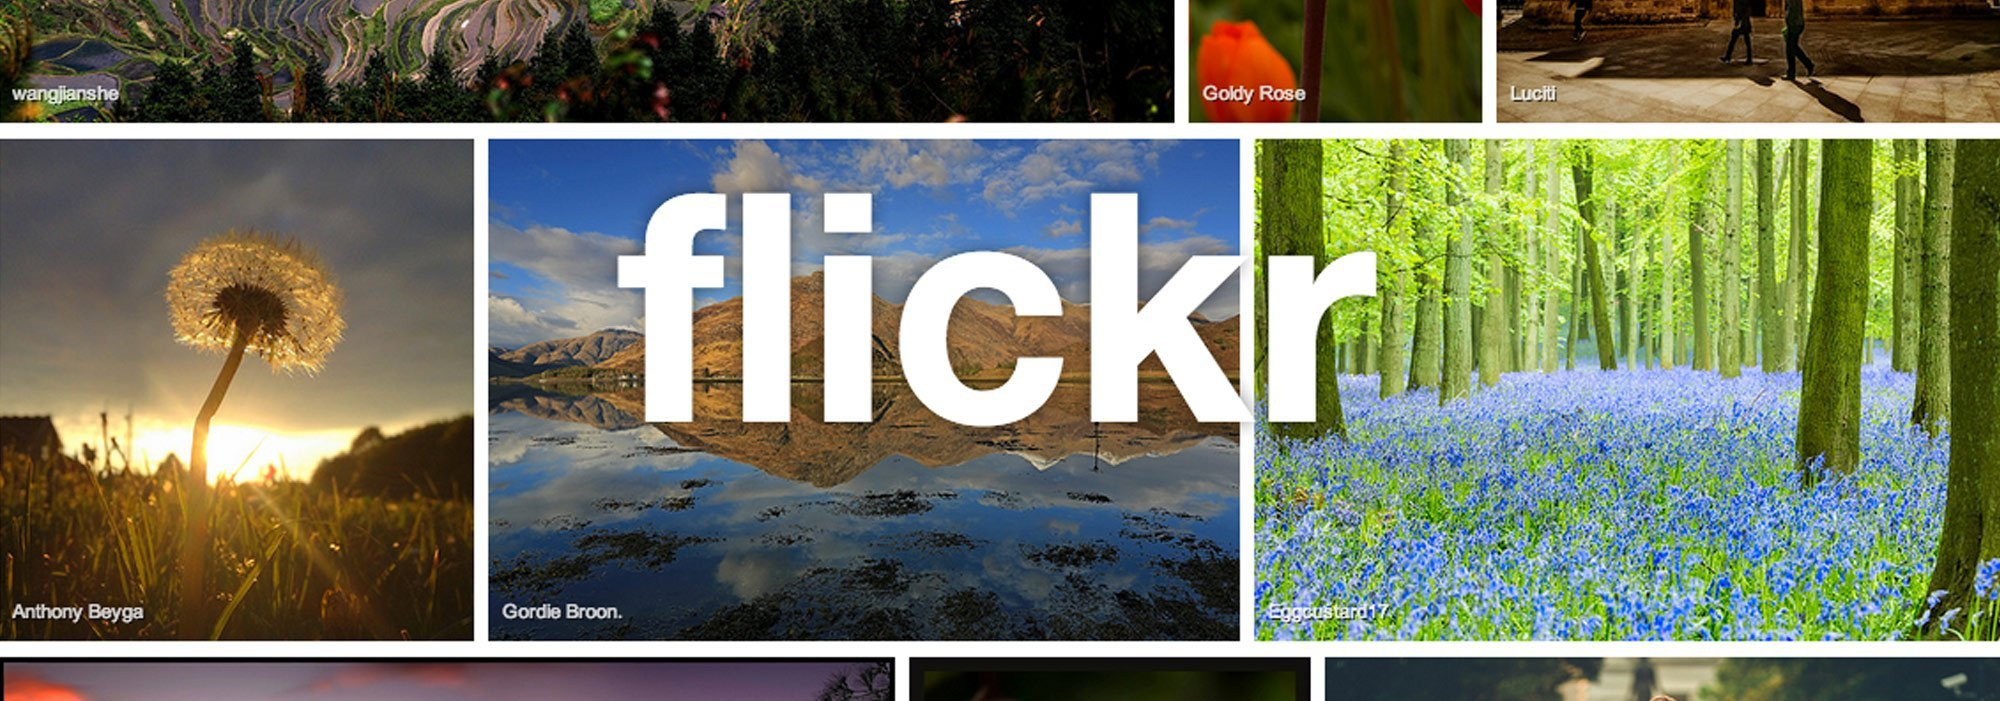 Flickr Marketing Agency Solution Web Designs